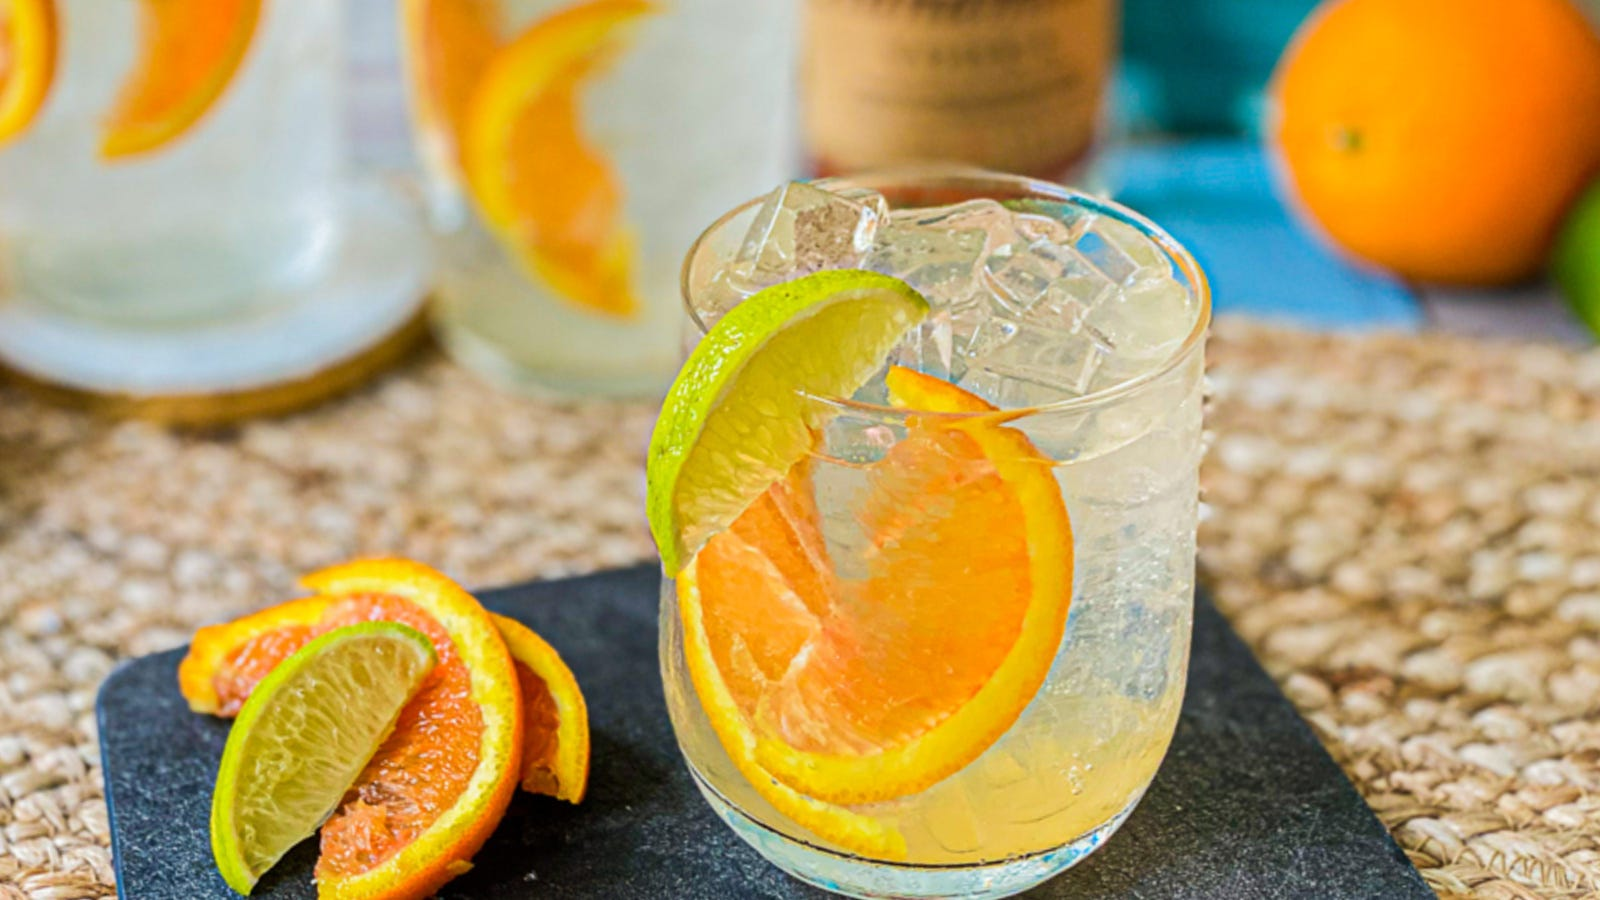 A glass of vodka tonic with orange and lime wedges.